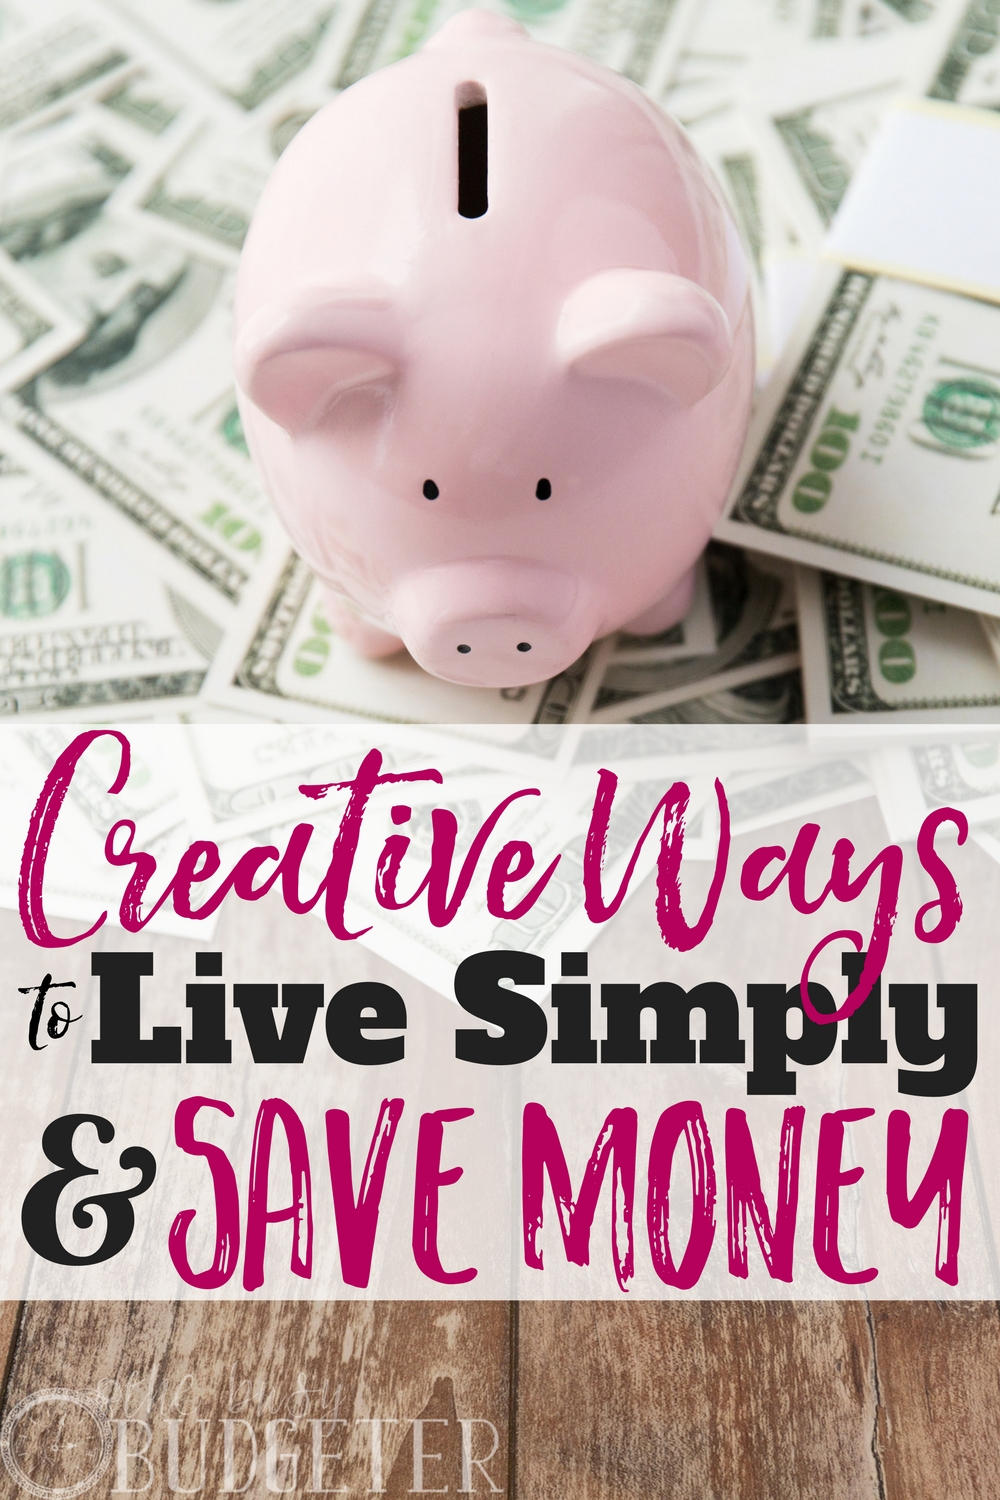 I hate budgeting, but this article makes it SO EASY. Saving moving WITHOUT sacrificing? Yes please!! I'm saving this article so I can look back on it for more creative ways to save money throughout the year. Thank you!